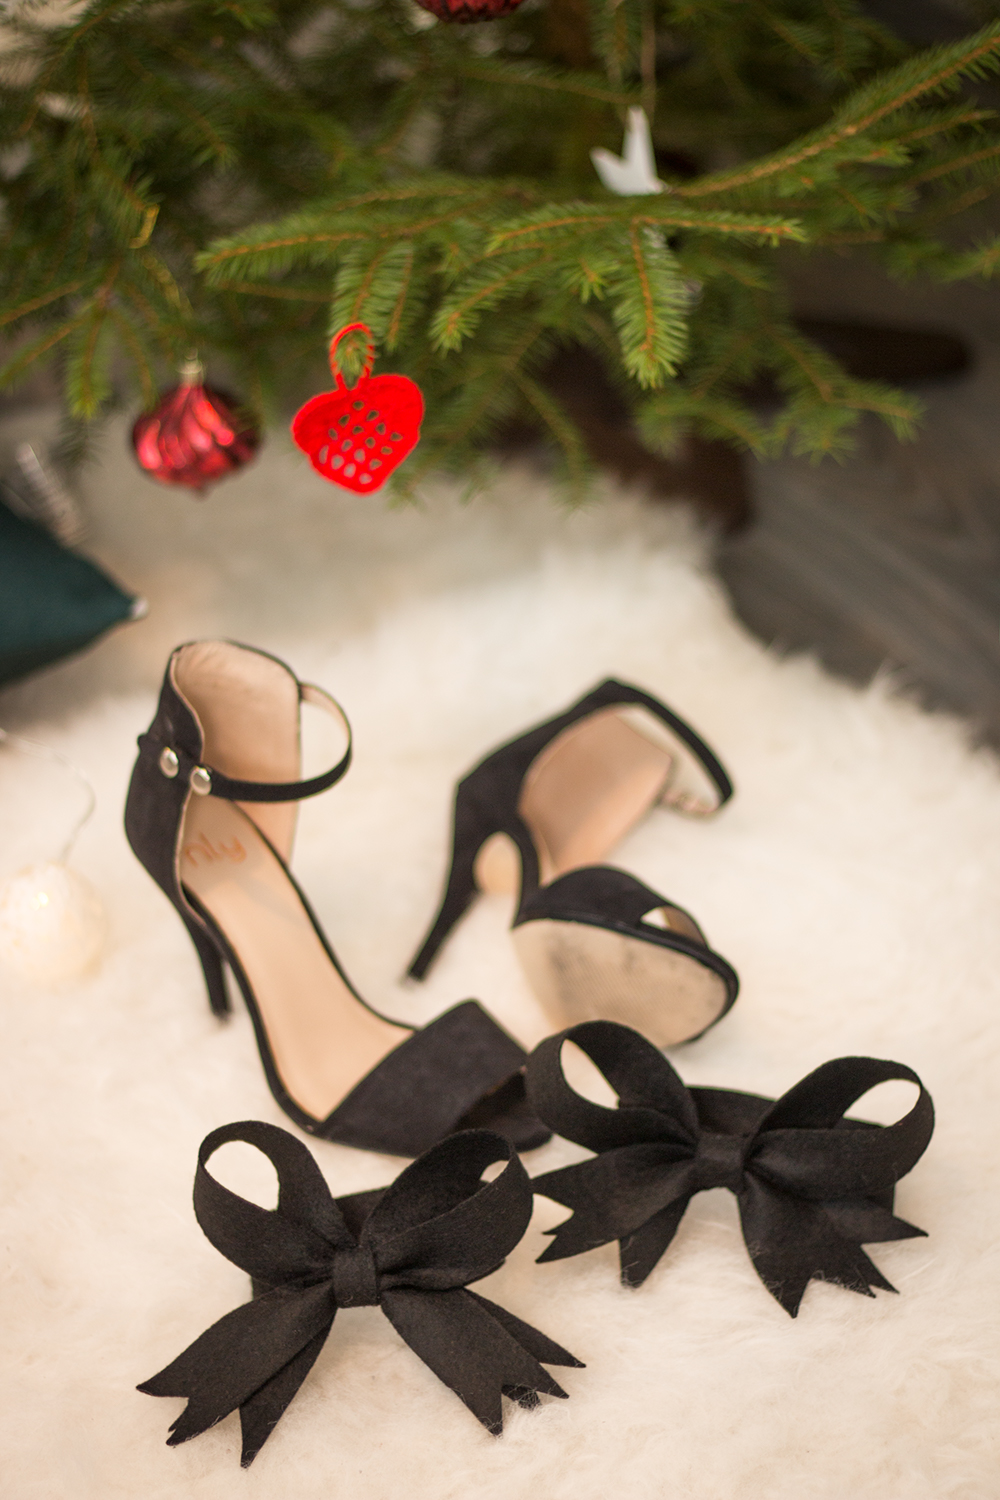 DIY Ankle bows for your heels | New heels without ruining them | Sandramarias.com